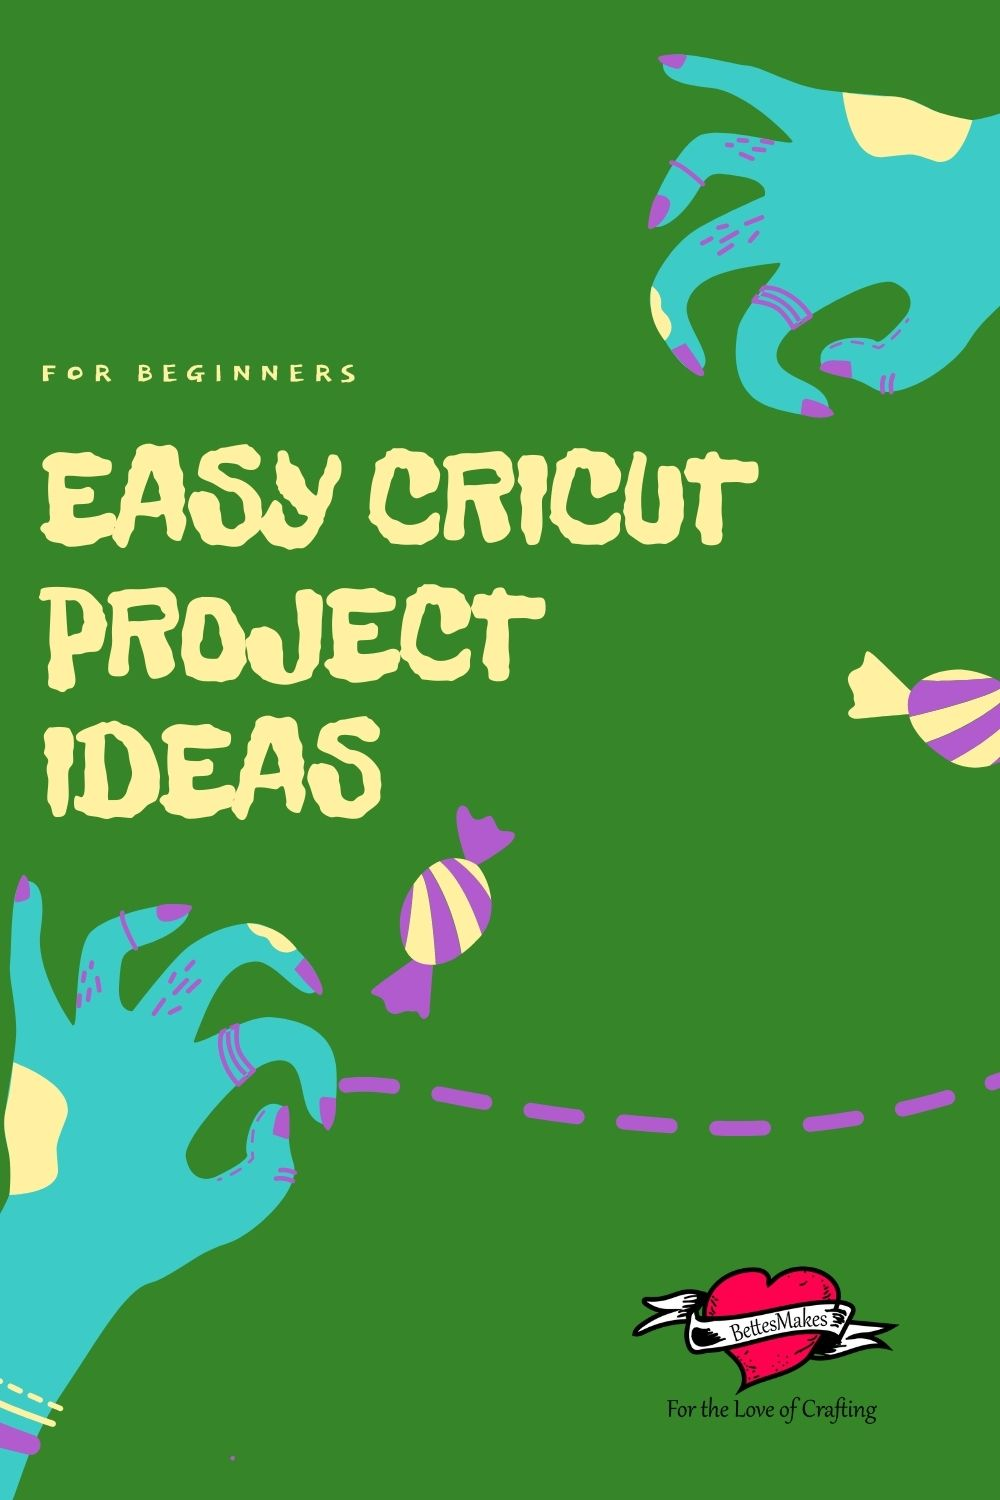 Easy Cricut Project Ideas for Beginners - PG